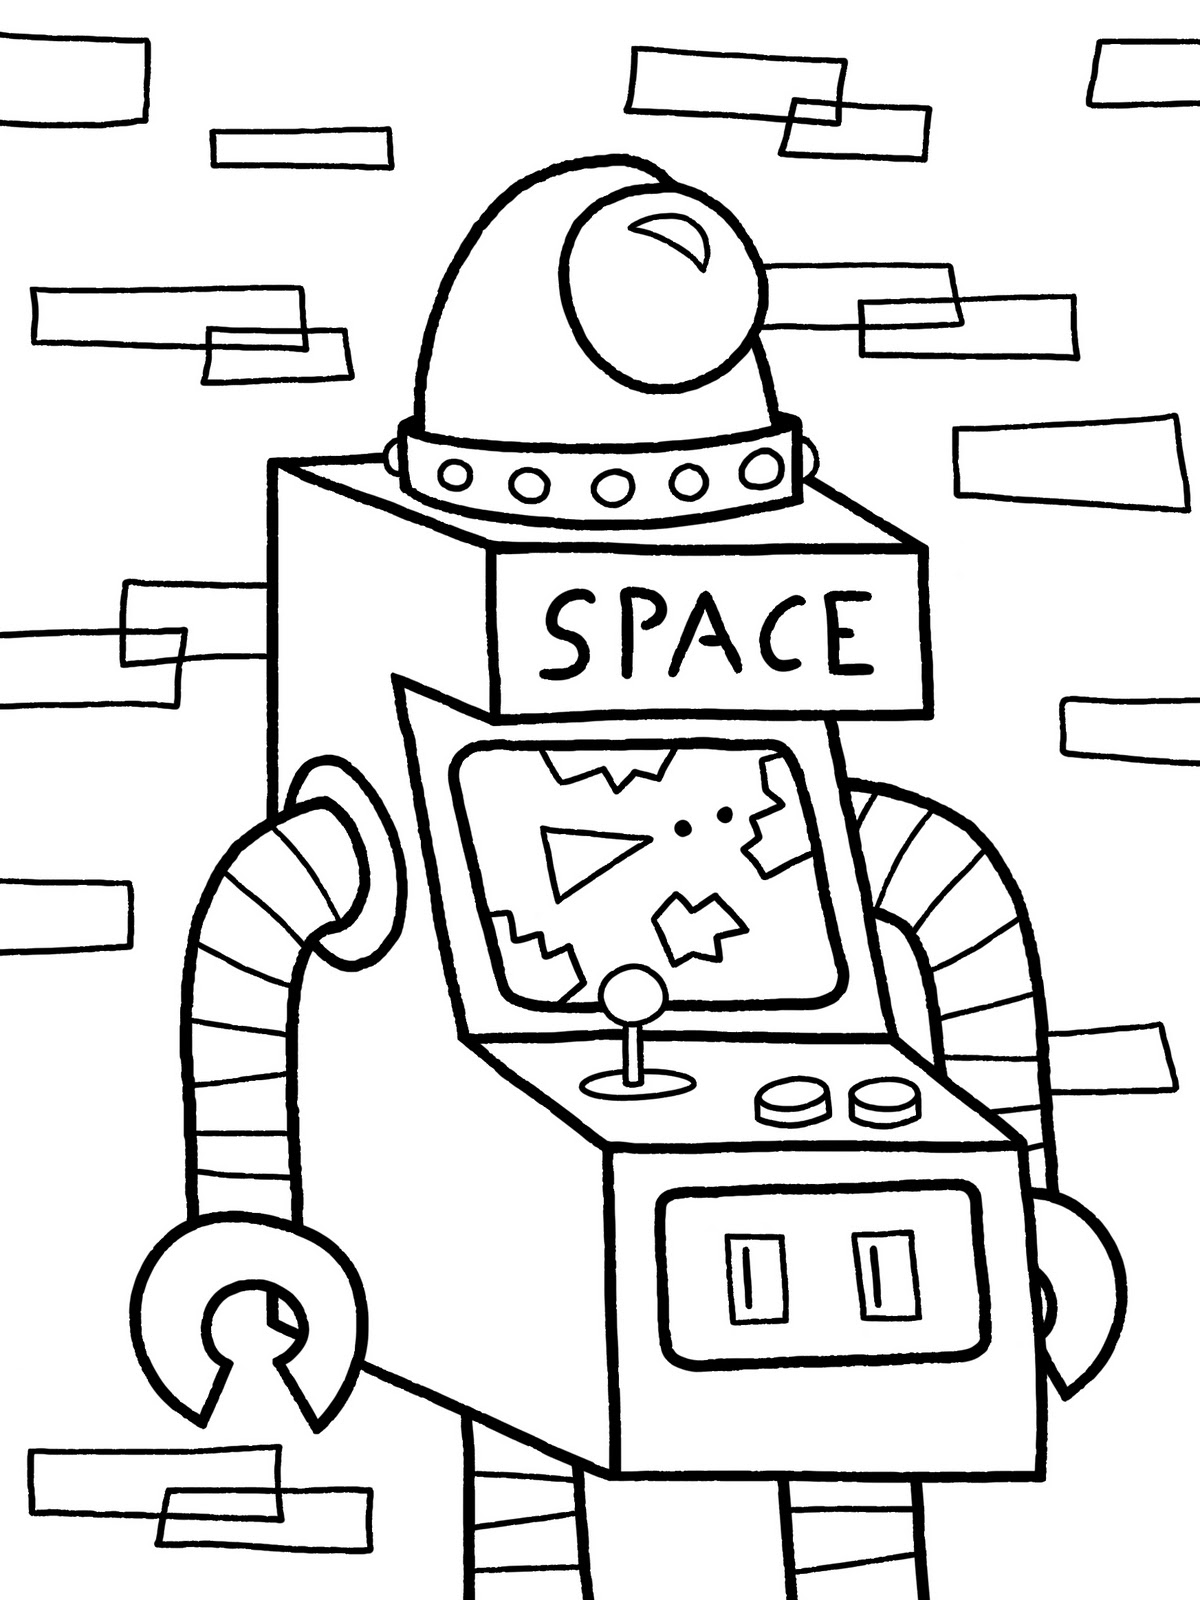 girl robot coloring pages robot girl lottie colouring page lottie dolls coloring girl pages robot